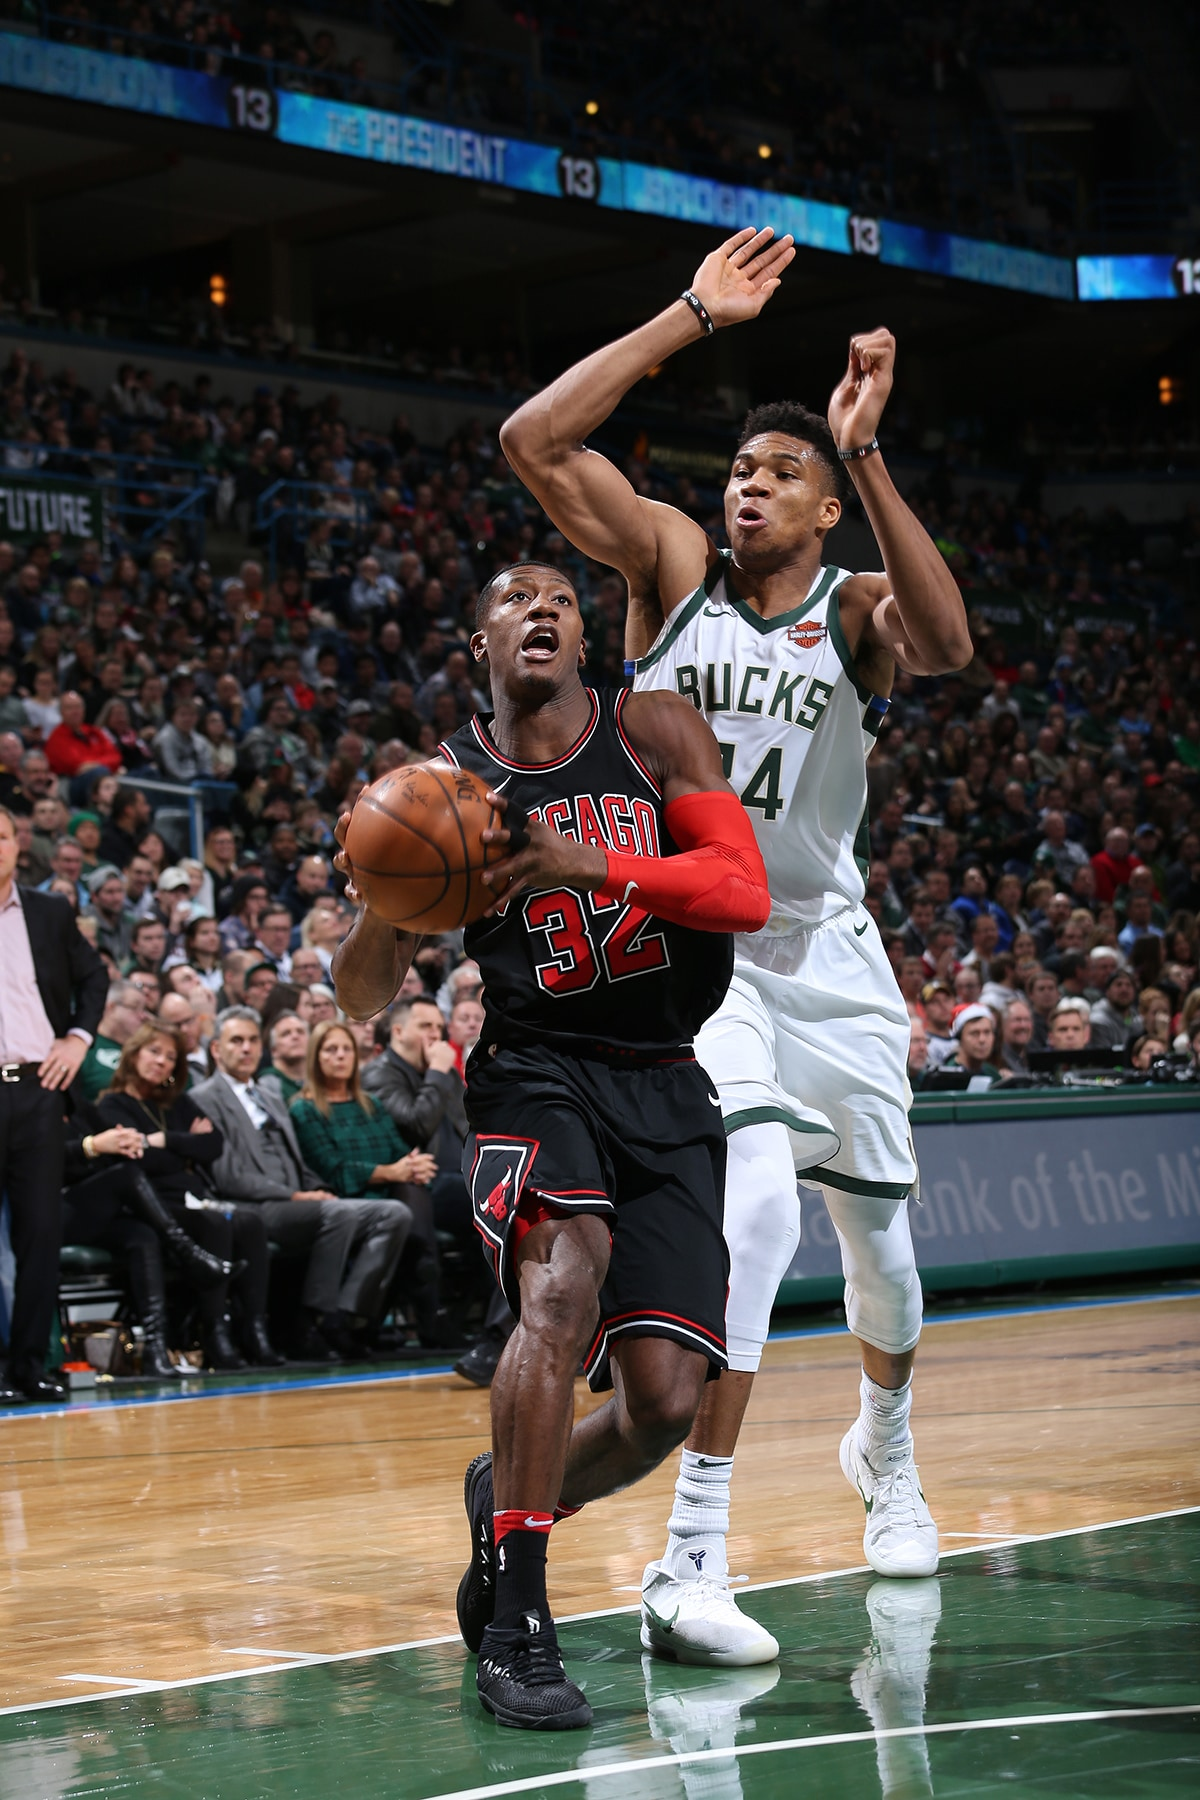 Kris Dunn #32 of the Chicago Bulls handles the ball against Giannis Antetokounmpo #34 of the Milwaukee Bucks on December 26, 2017 at the BMO Harris Bradley Center in Milwaukee, Wisconsin